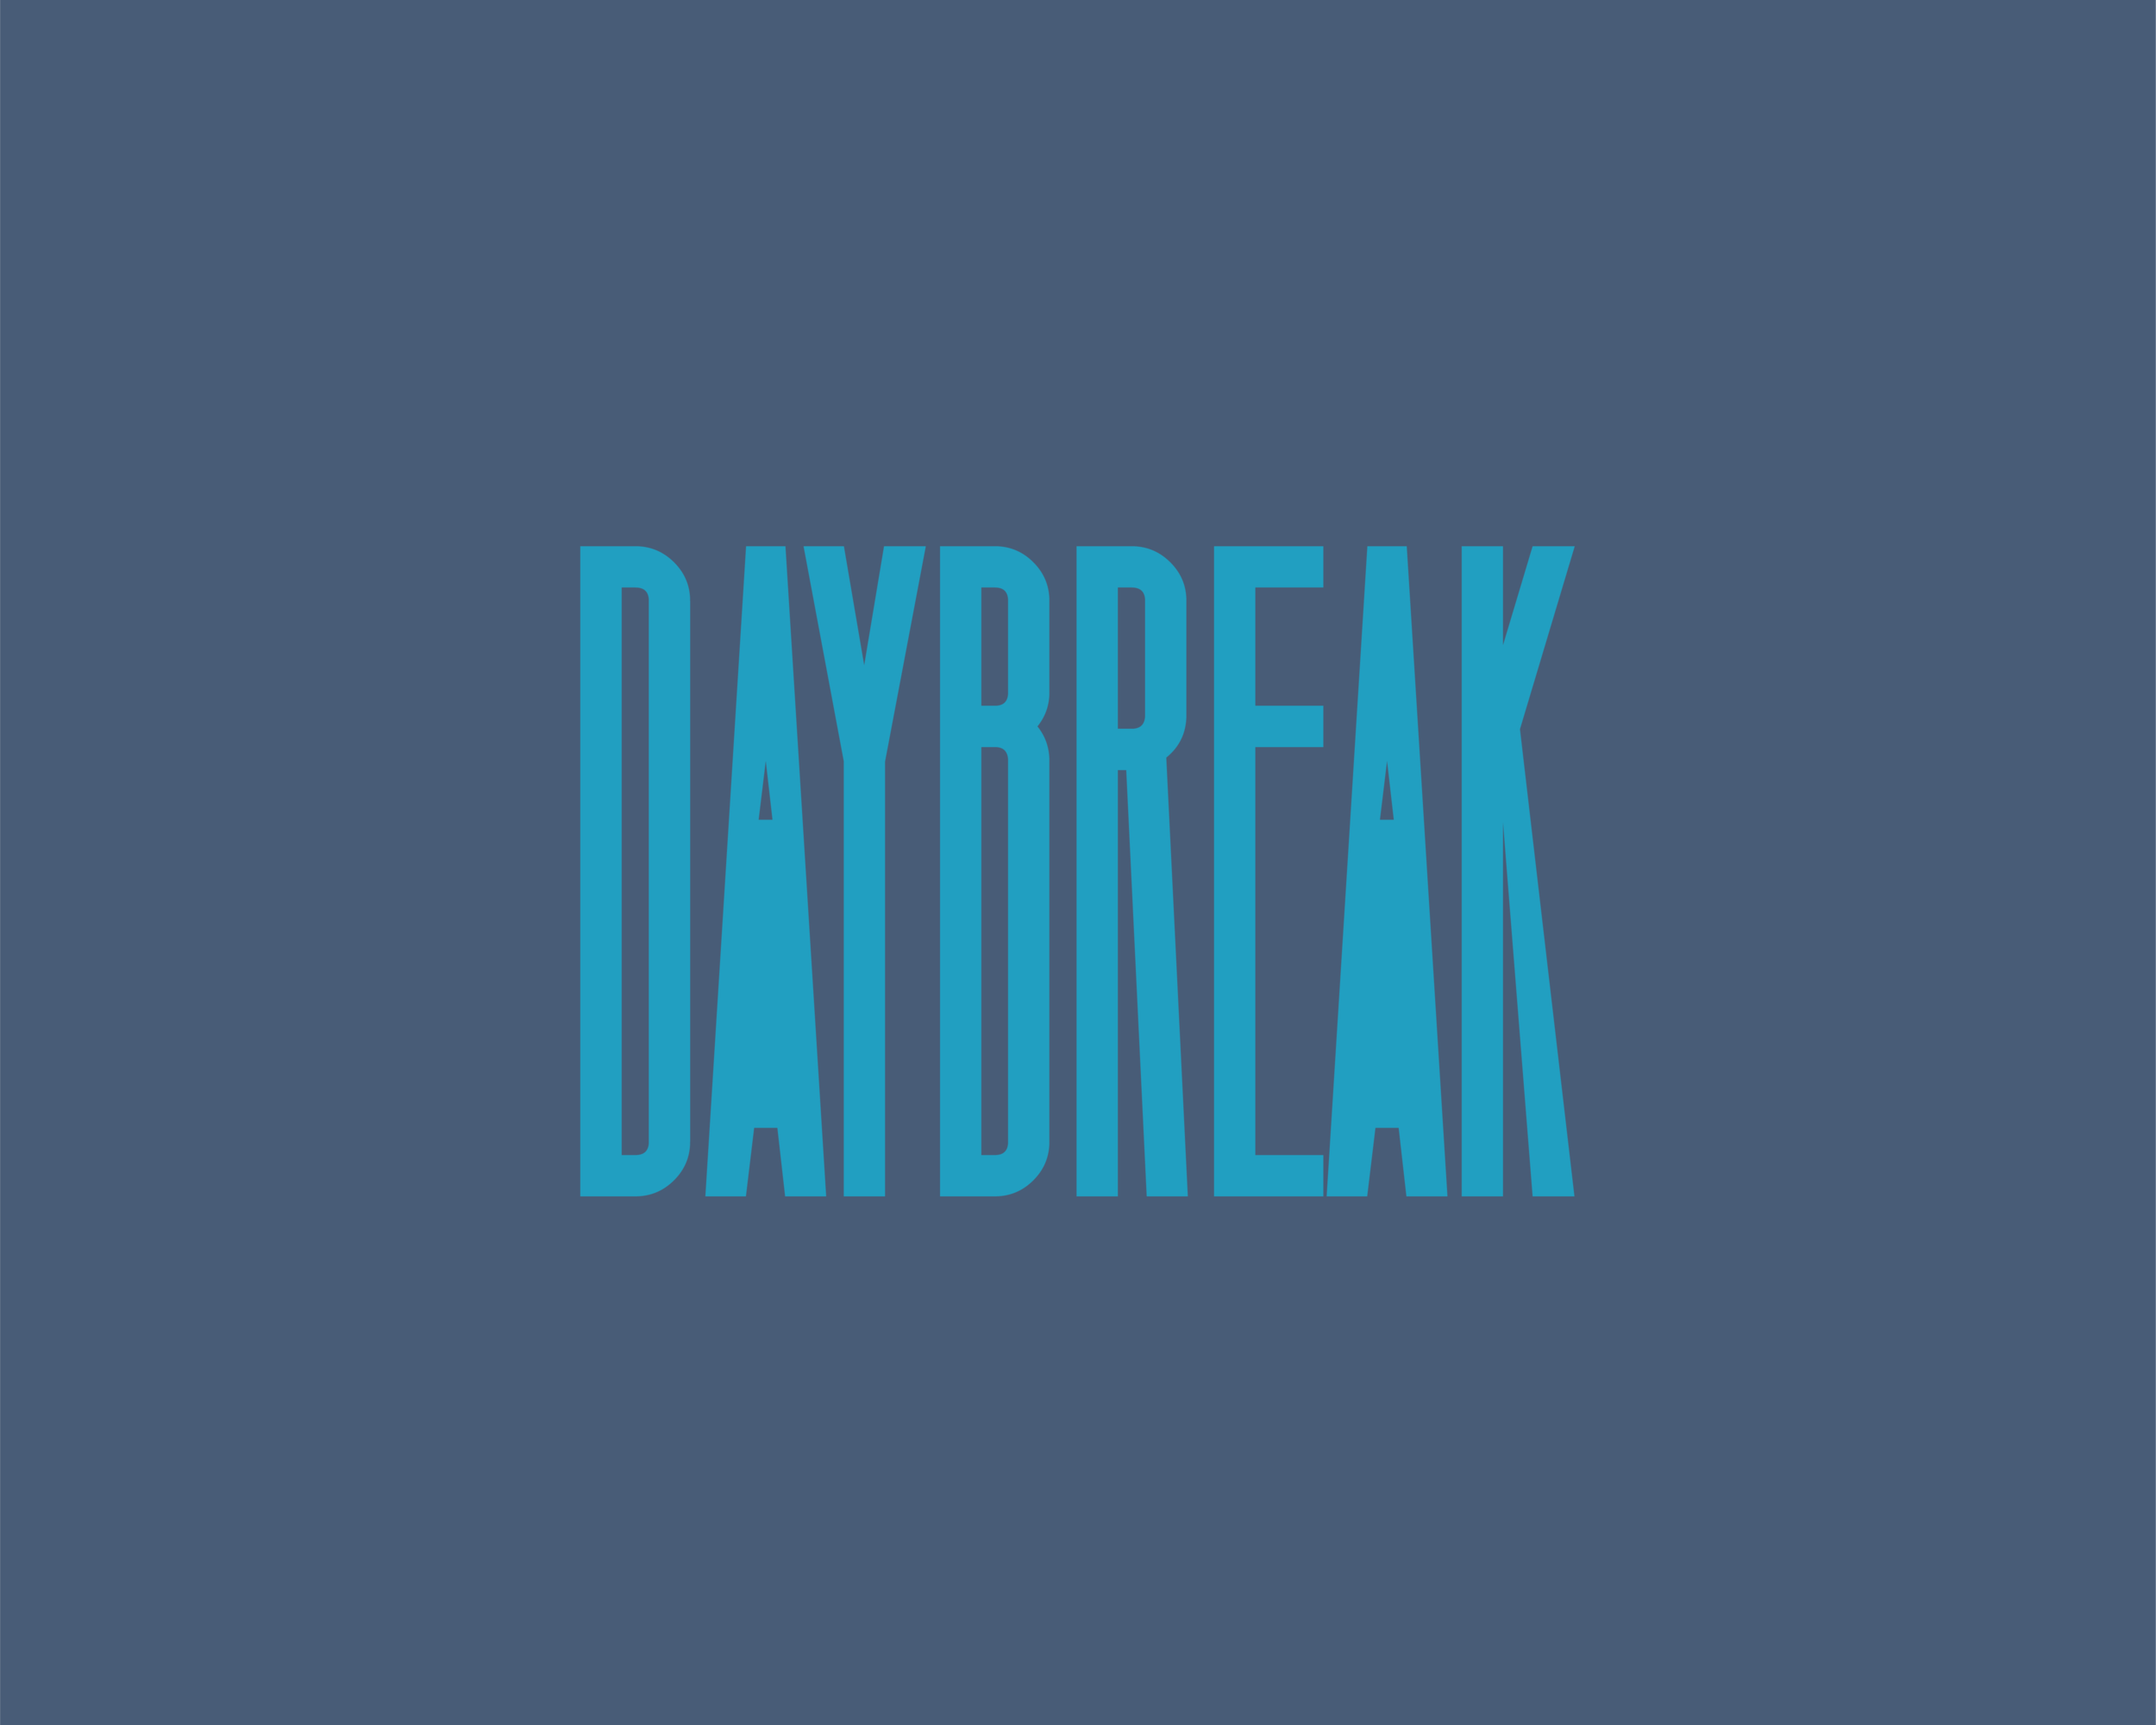 DAYBREAK WORKSHOP   Rest at night, dance at daybreak  - this workshop provides a diverse experience of storytelling through movement, popping /funk styles and contemporary. A group reflection is offered at the end of this shift.